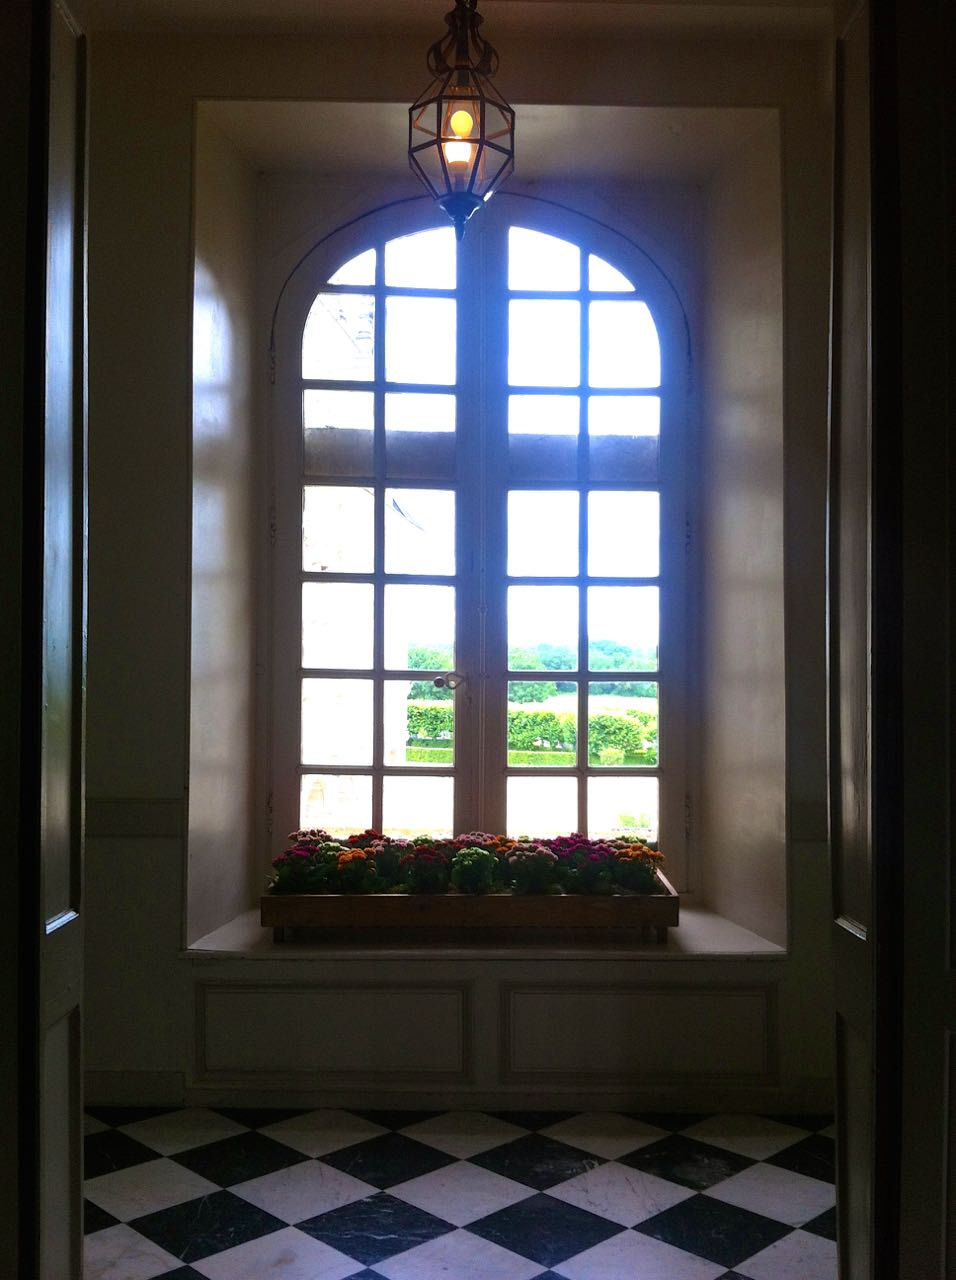 A window in Villandry